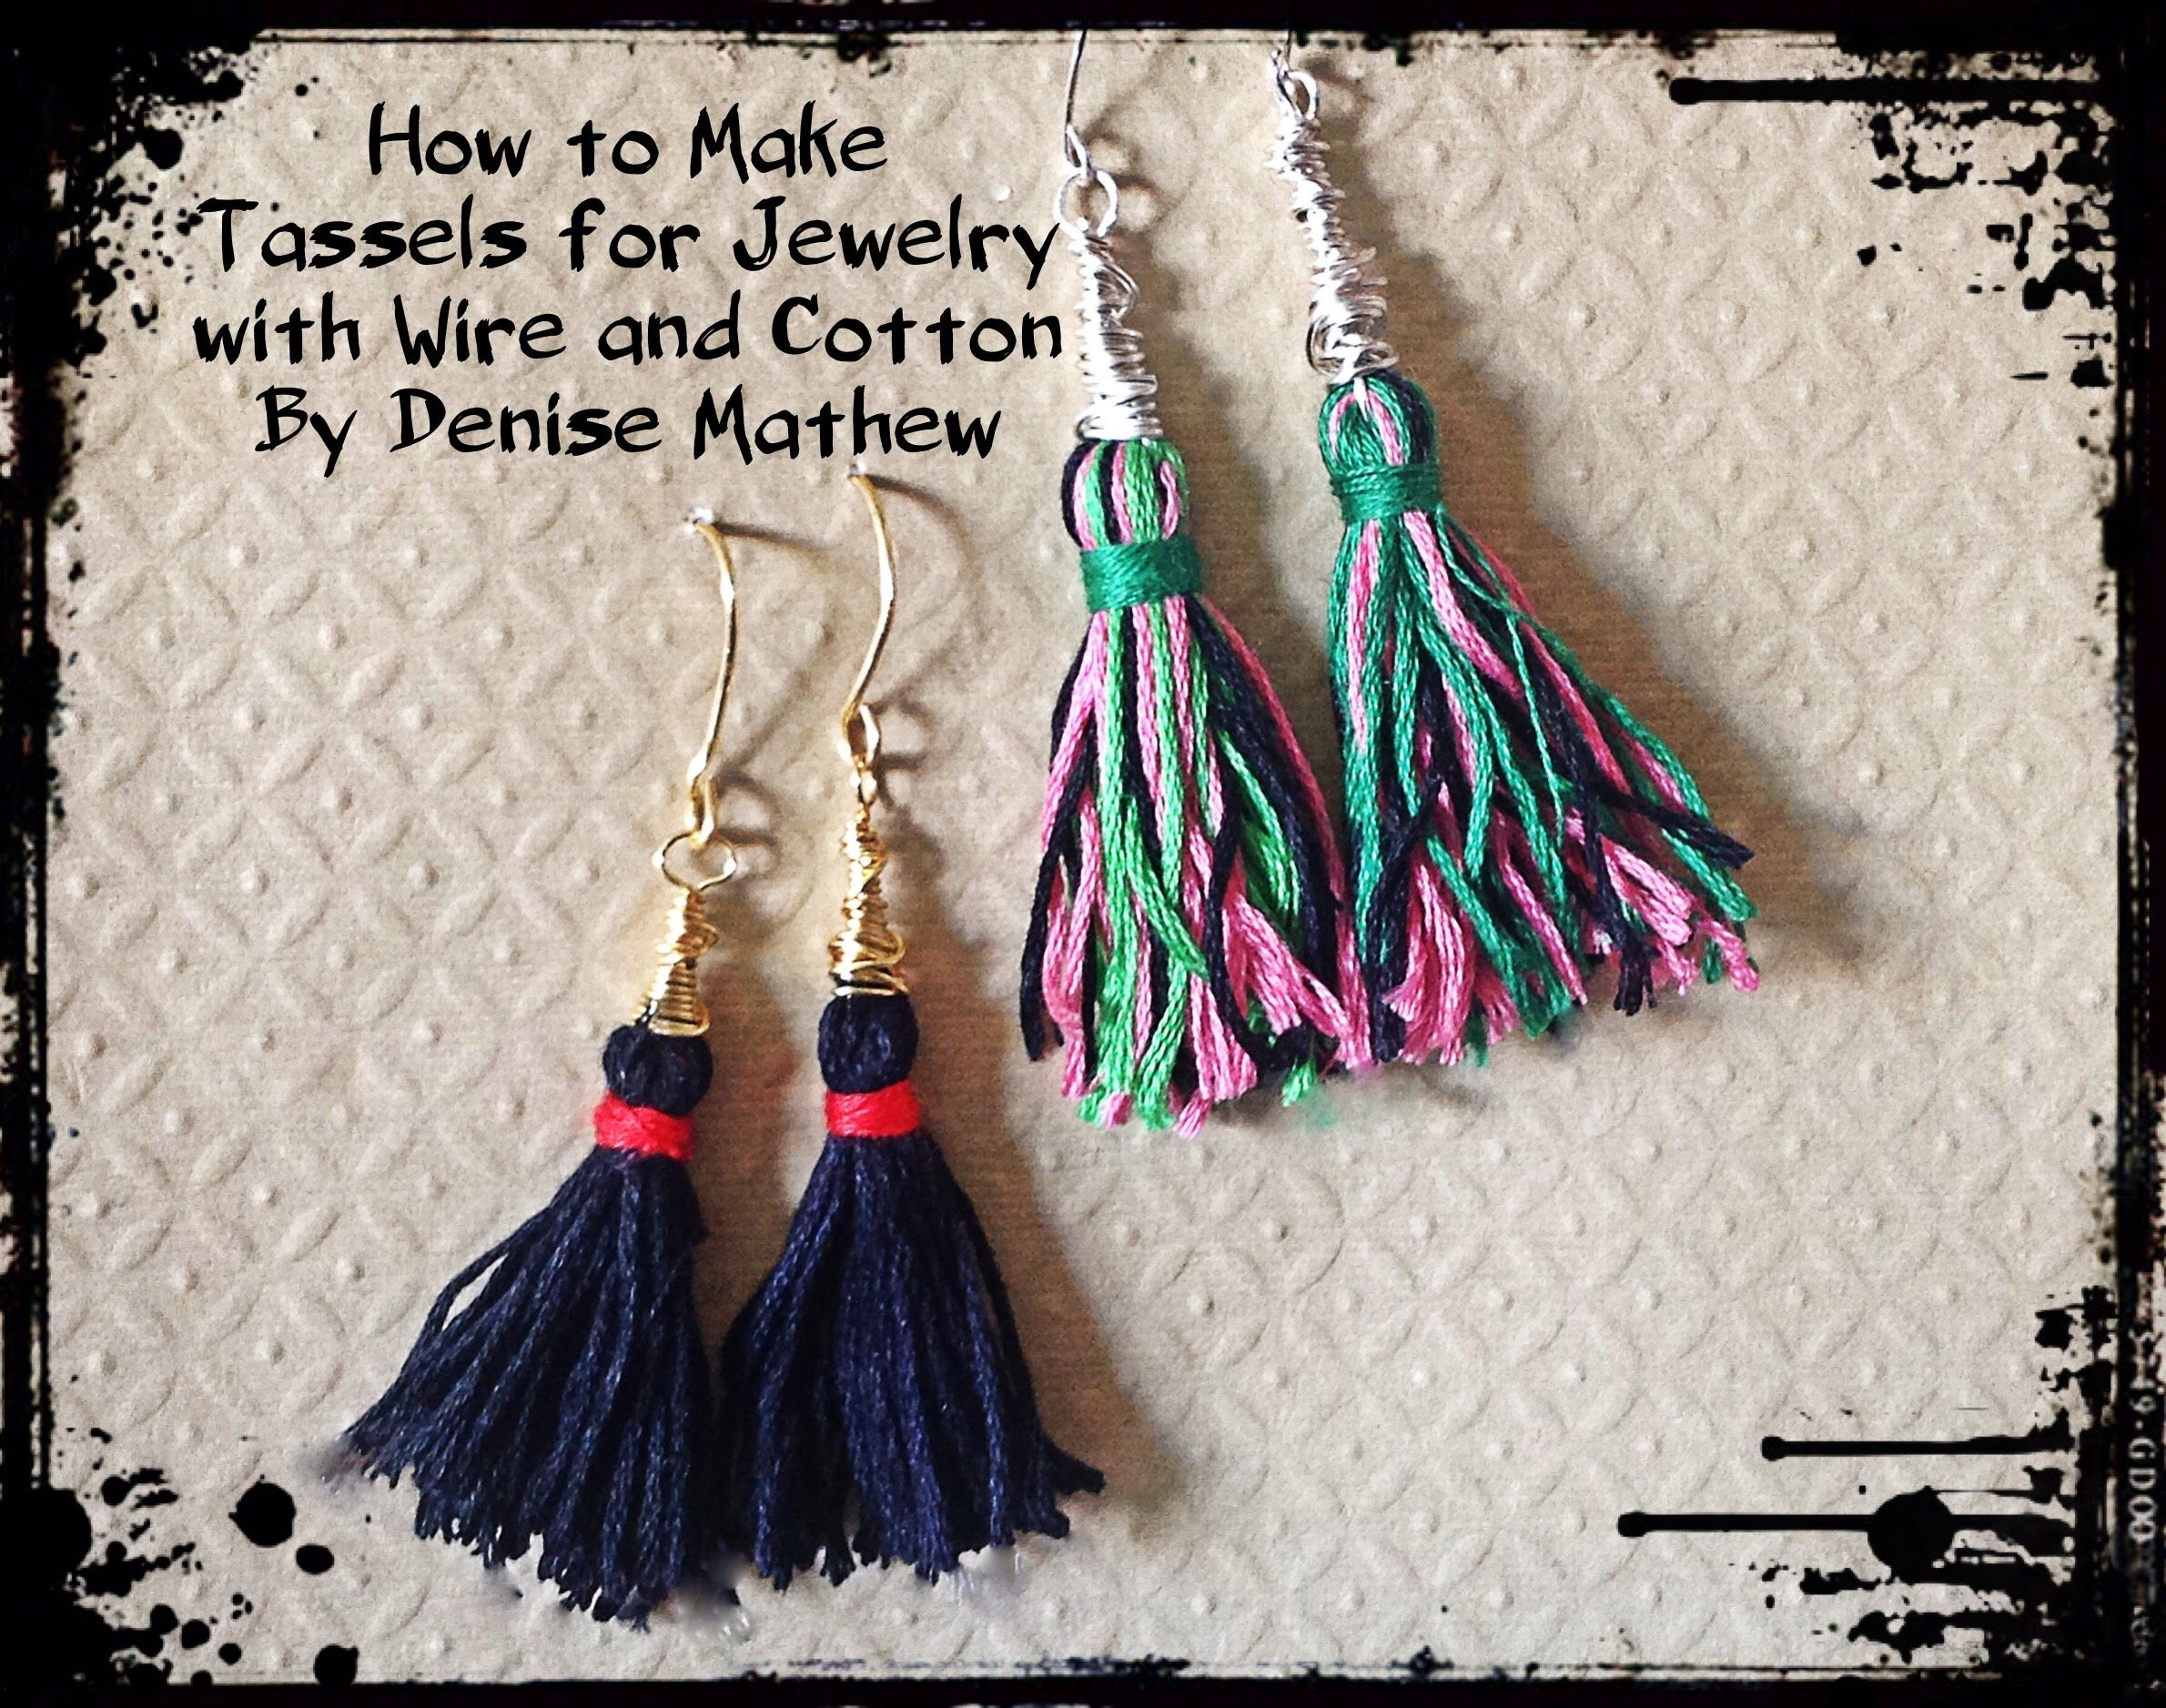 c8006734990b3 How to Make Tassels for Jewelry from Wire and Cotton by Denise ...